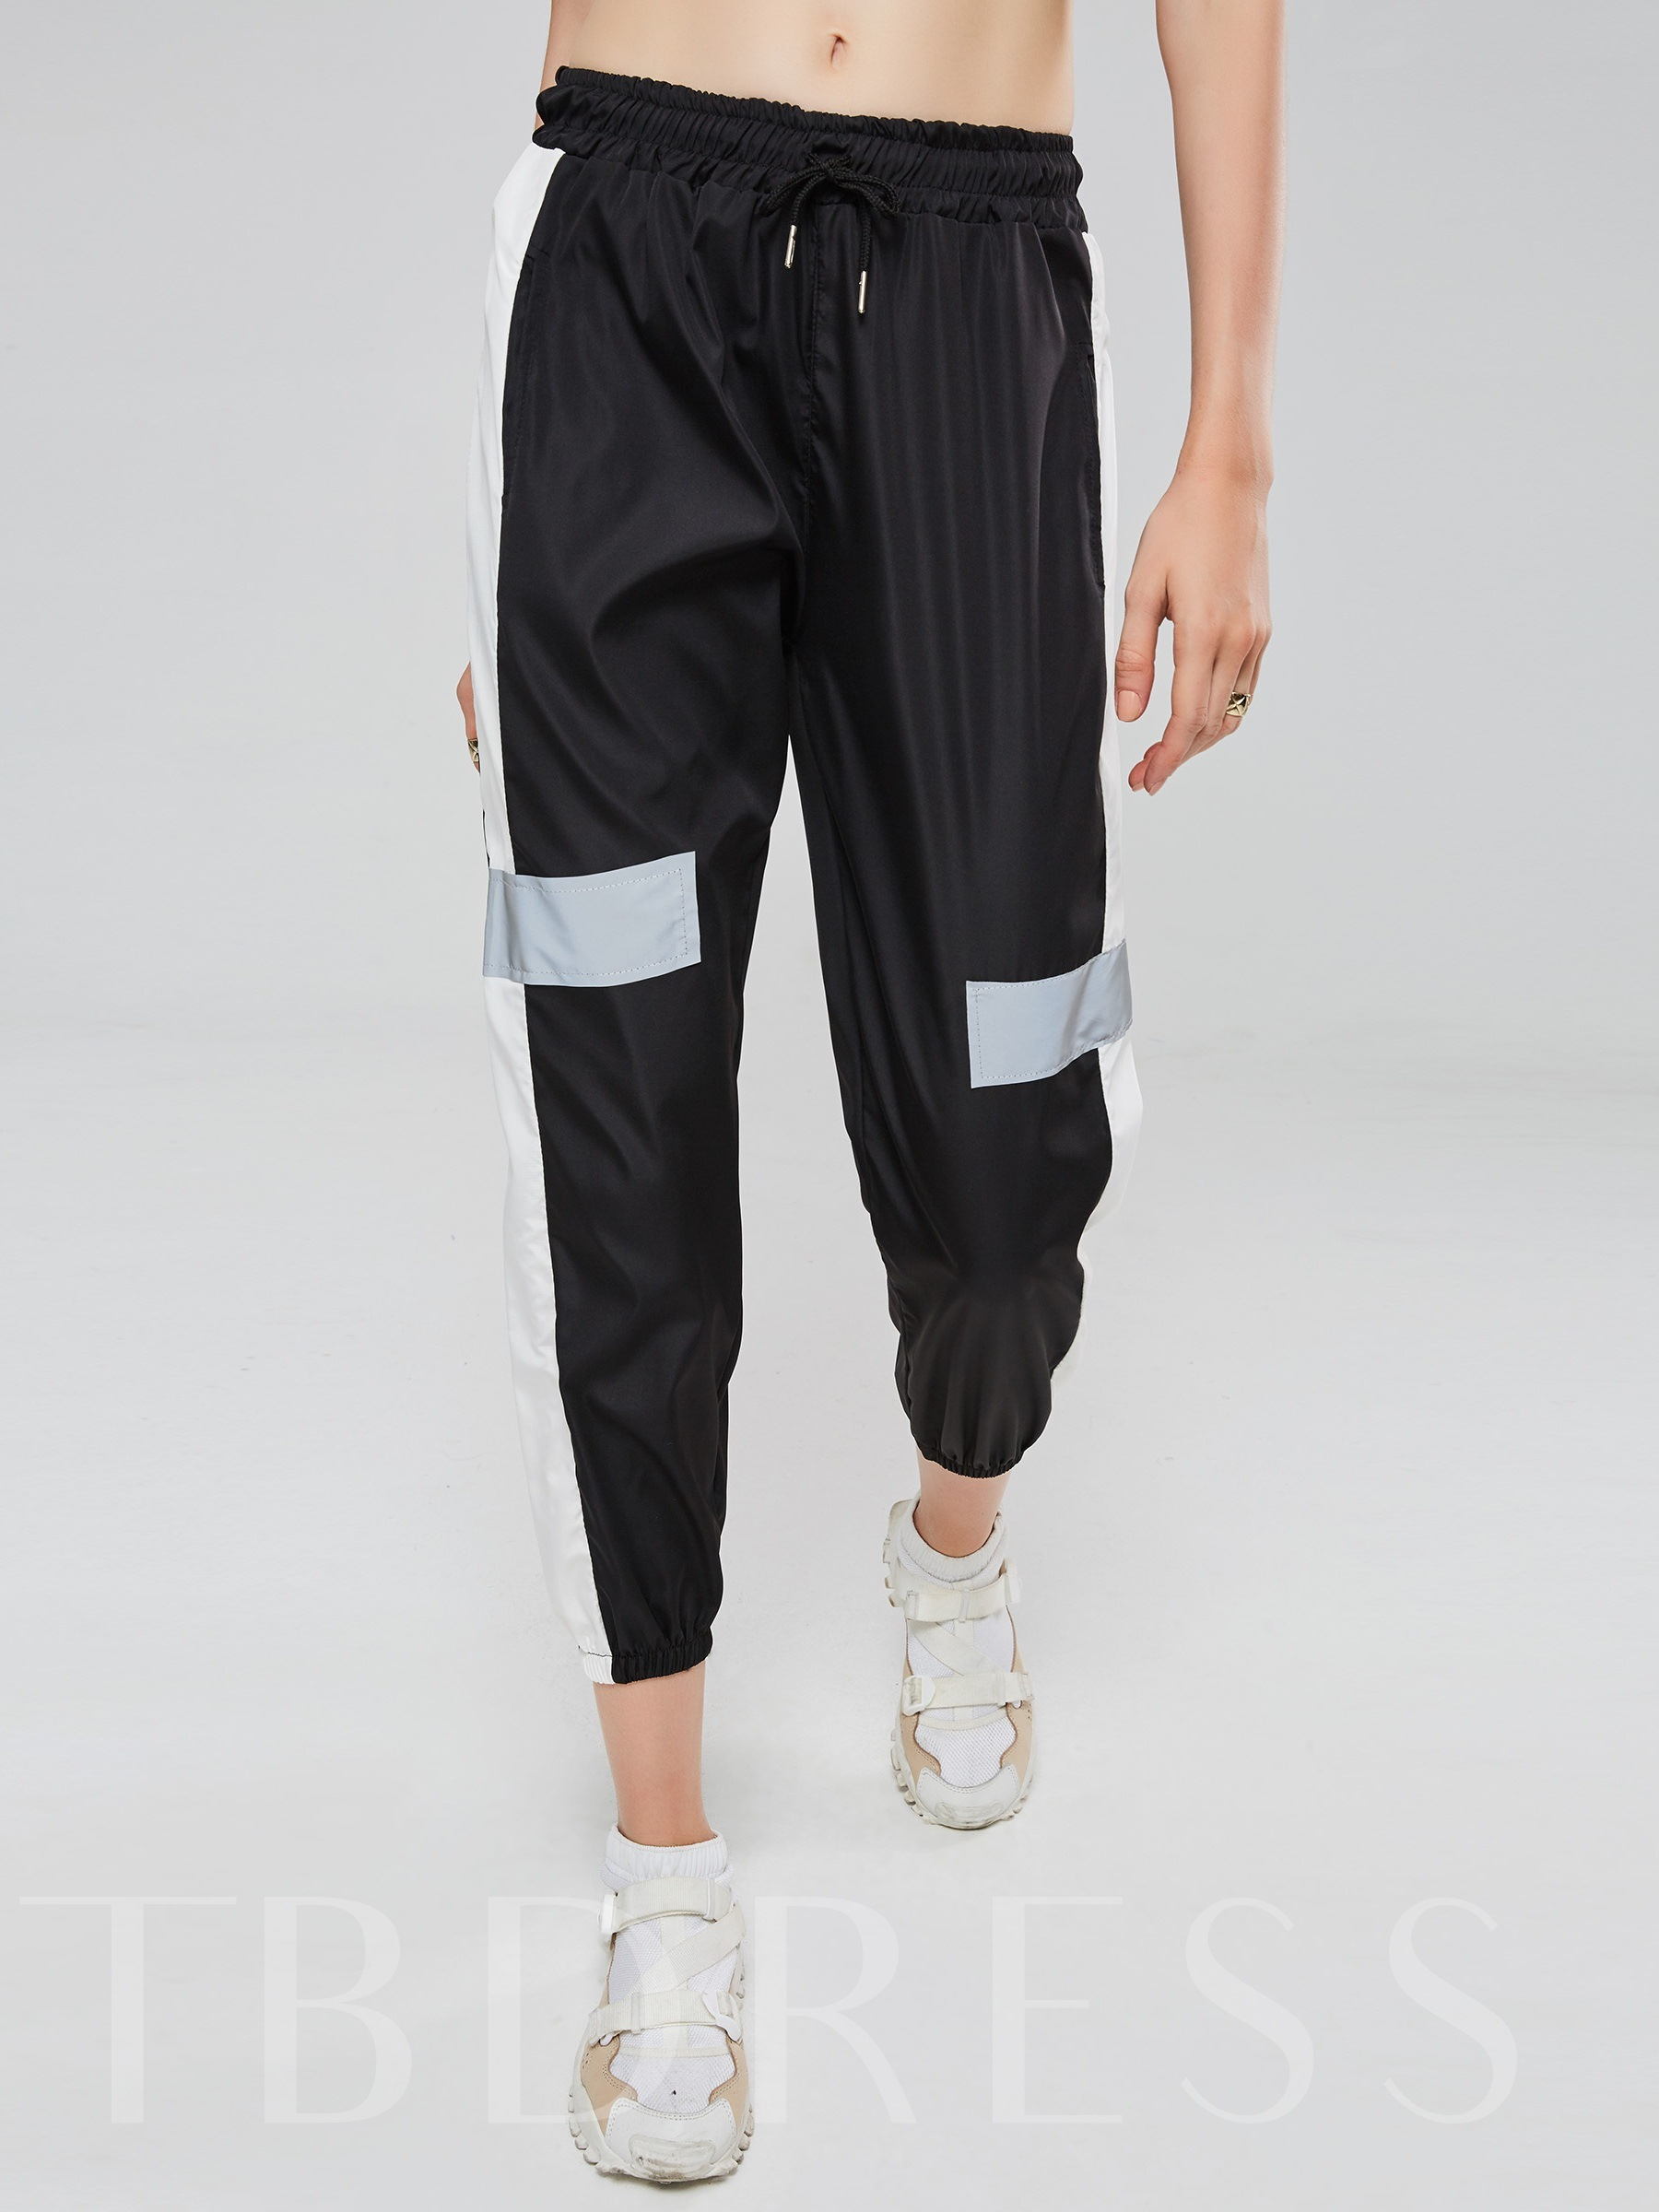 Buy Color Block Patchwork Women's Harem Pants, 13398861 for $9.56 in TBDress store